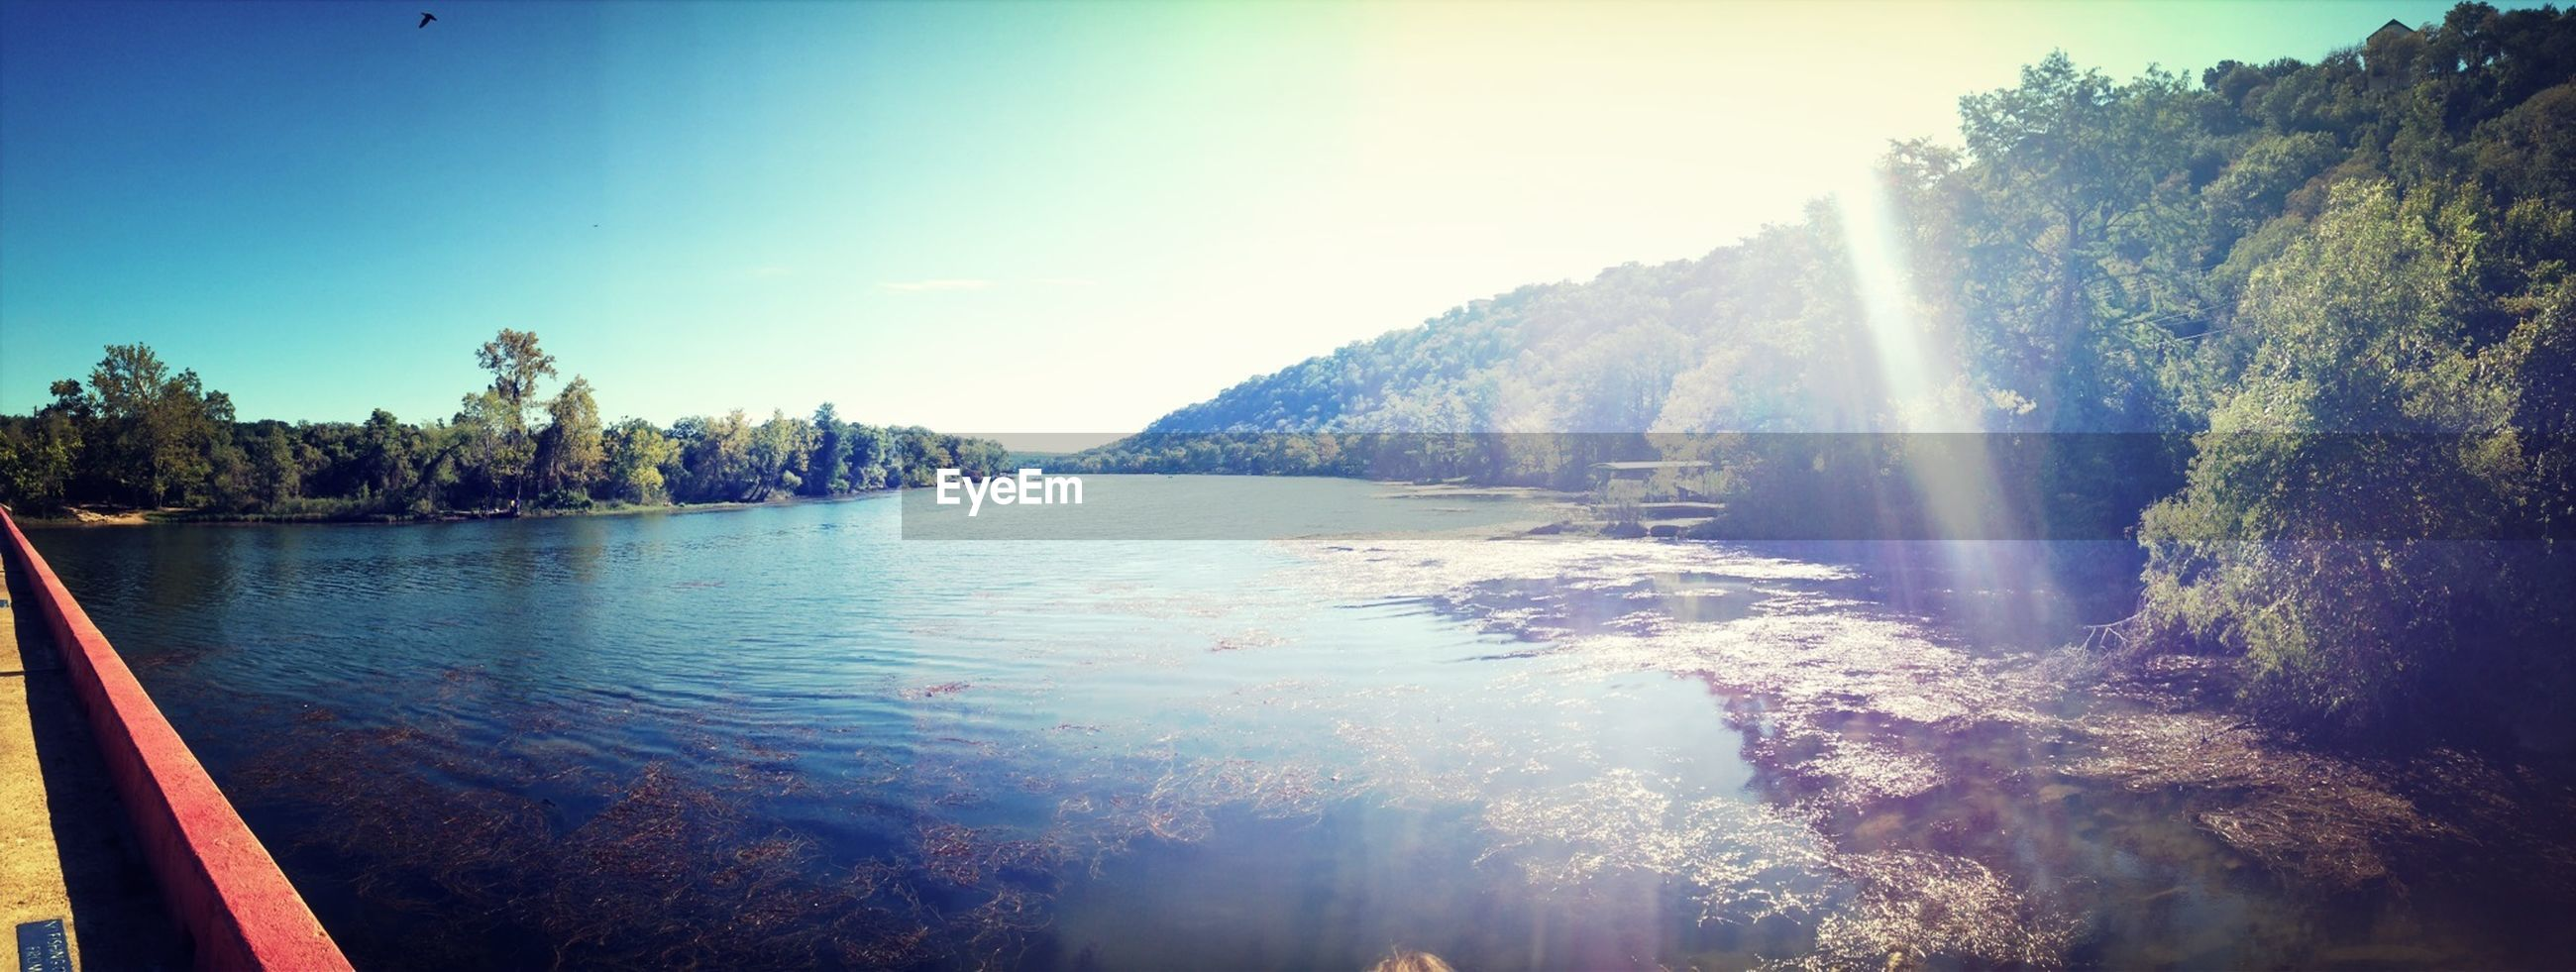 water, scenics, beauty in nature, tranquil scene, tranquility, sunbeam, sunlight, mountain, sun, nature, tree, sky, lens flare, clear sky, idyllic, panoramic, lake, sunny, reflection, river